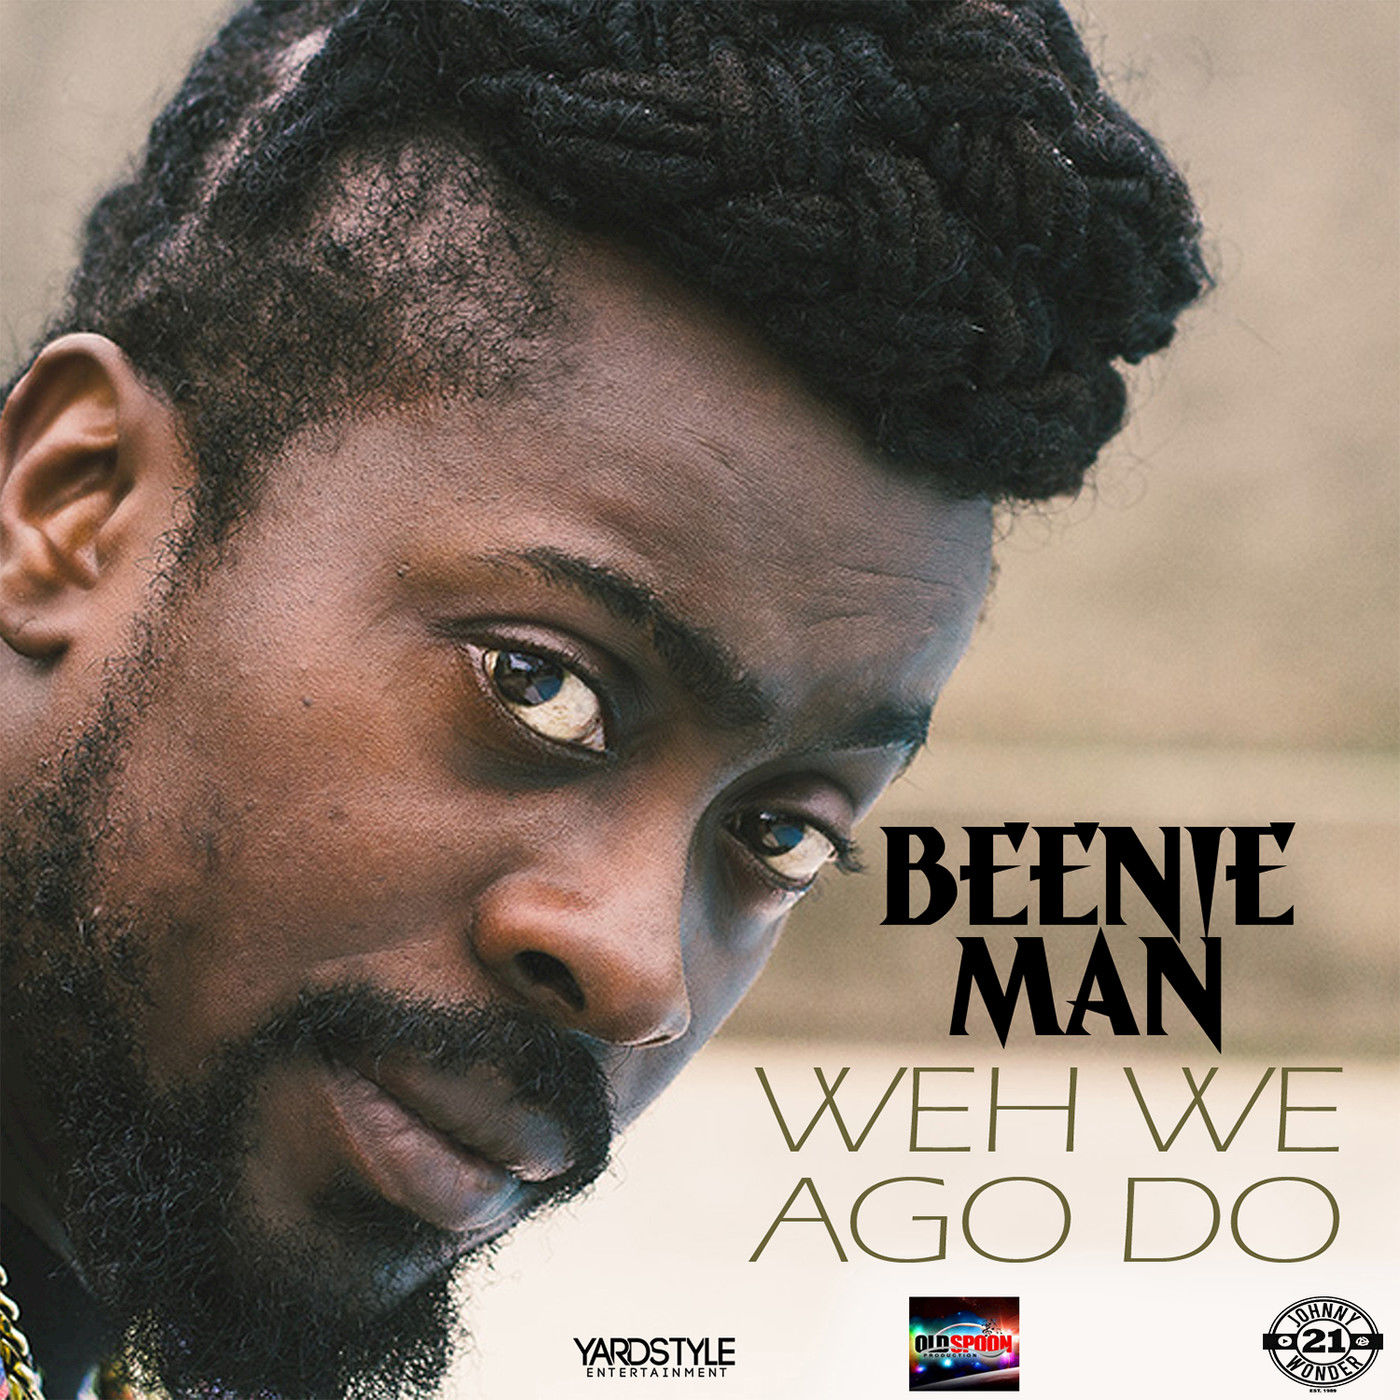 Beenie Man - Weh We Ago Do - Single Cover